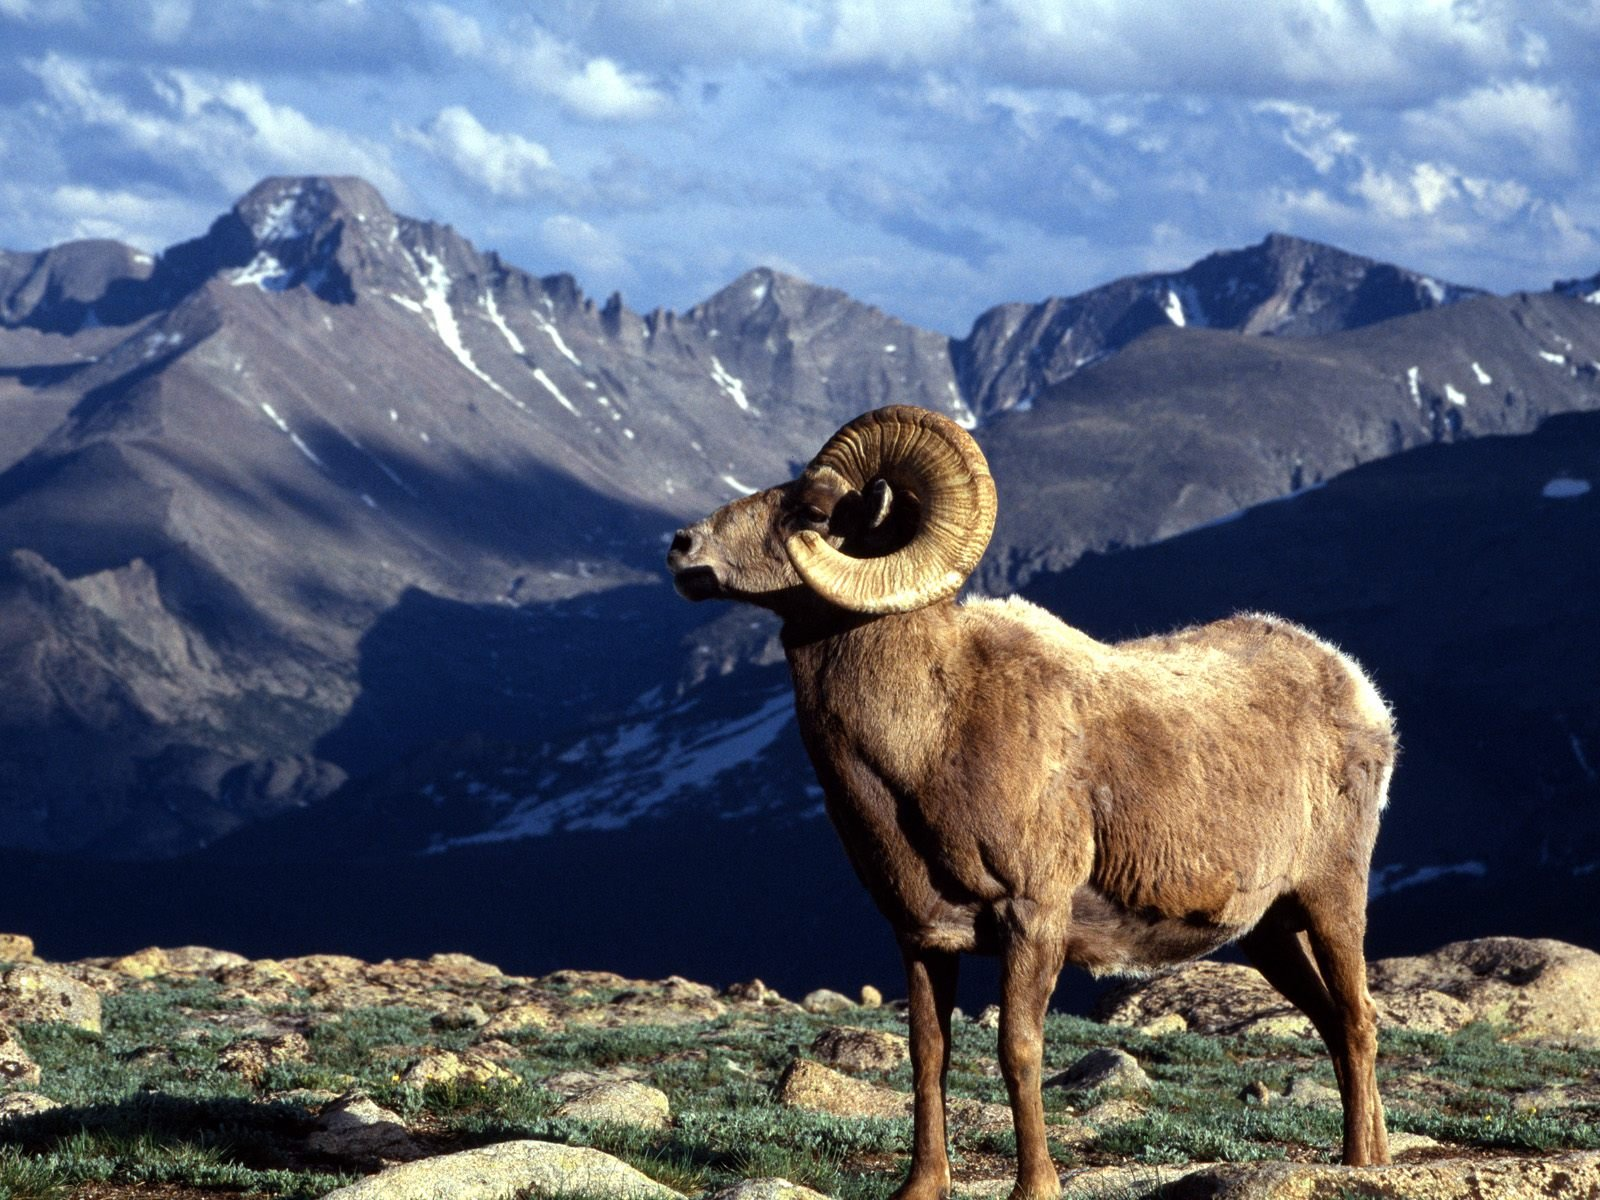 HD Wallpapers Big Horn Ram Rocky Mountain National Park Colorado 1600x1200